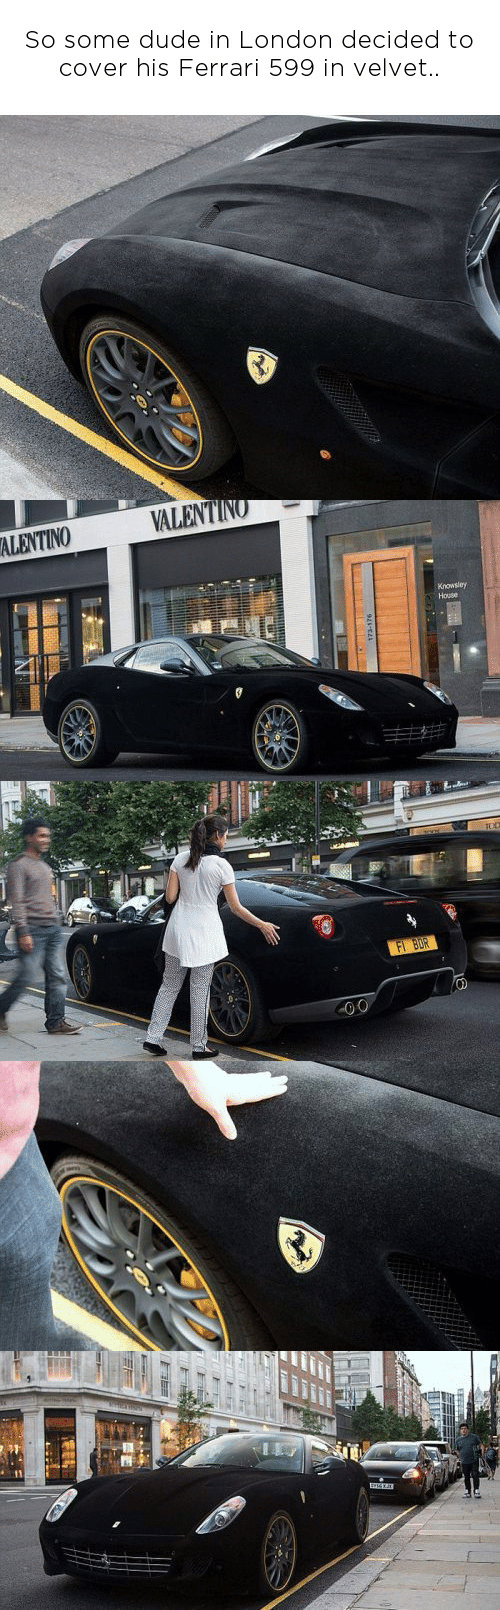 Valentin: So some dude in London decided to  cover his Ferrari 599 in velvet..   VALENTIN  Knowsley